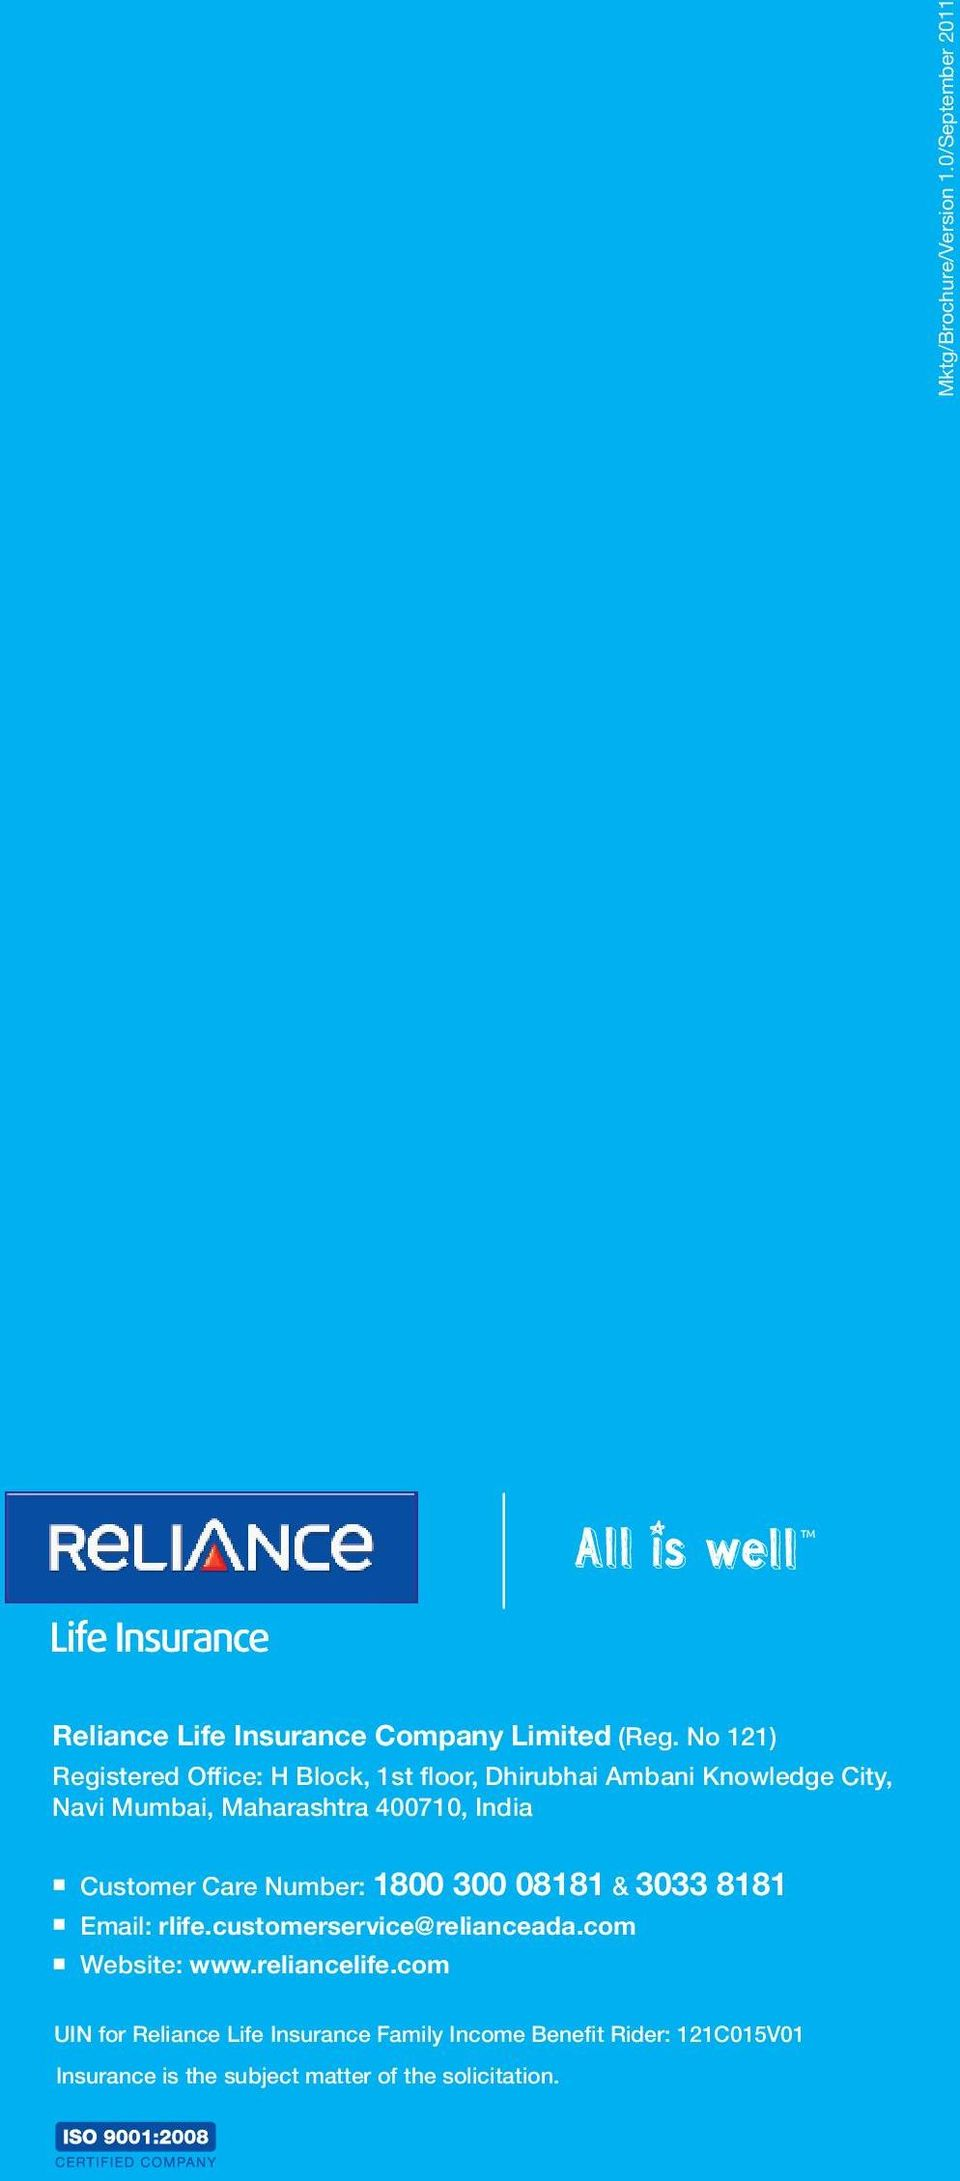 India Customer Care Number: 1800 300 08181 & 3033 8181 Email: rlife.customerservice@relianceada.com Website: www.